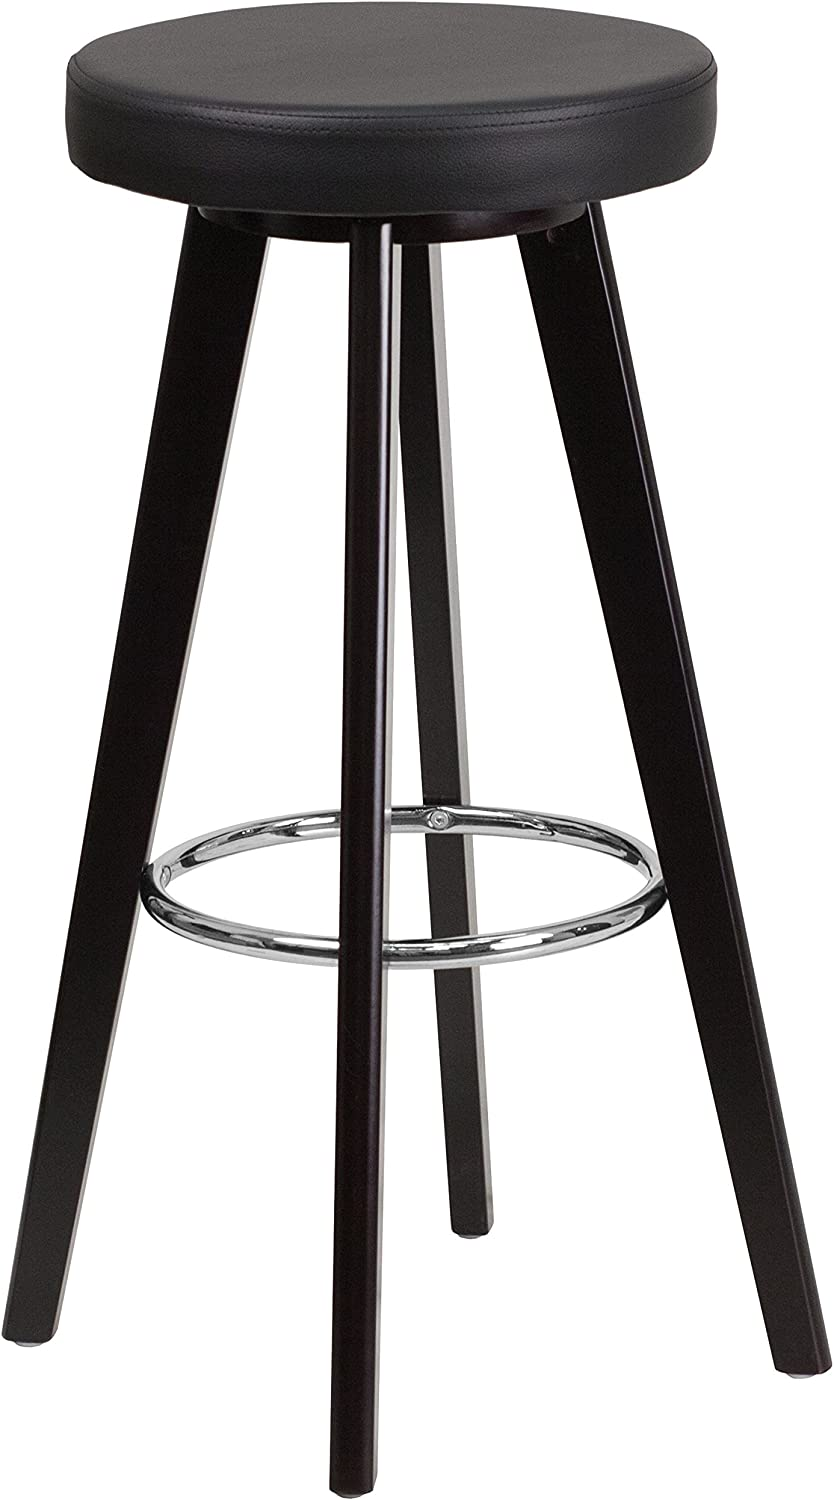 Flash Furniture CH-152601-BK-VY-GG Trenton Series High Contemporary Black Vinyl Barstool with Cappuccino Wood Frame, 29